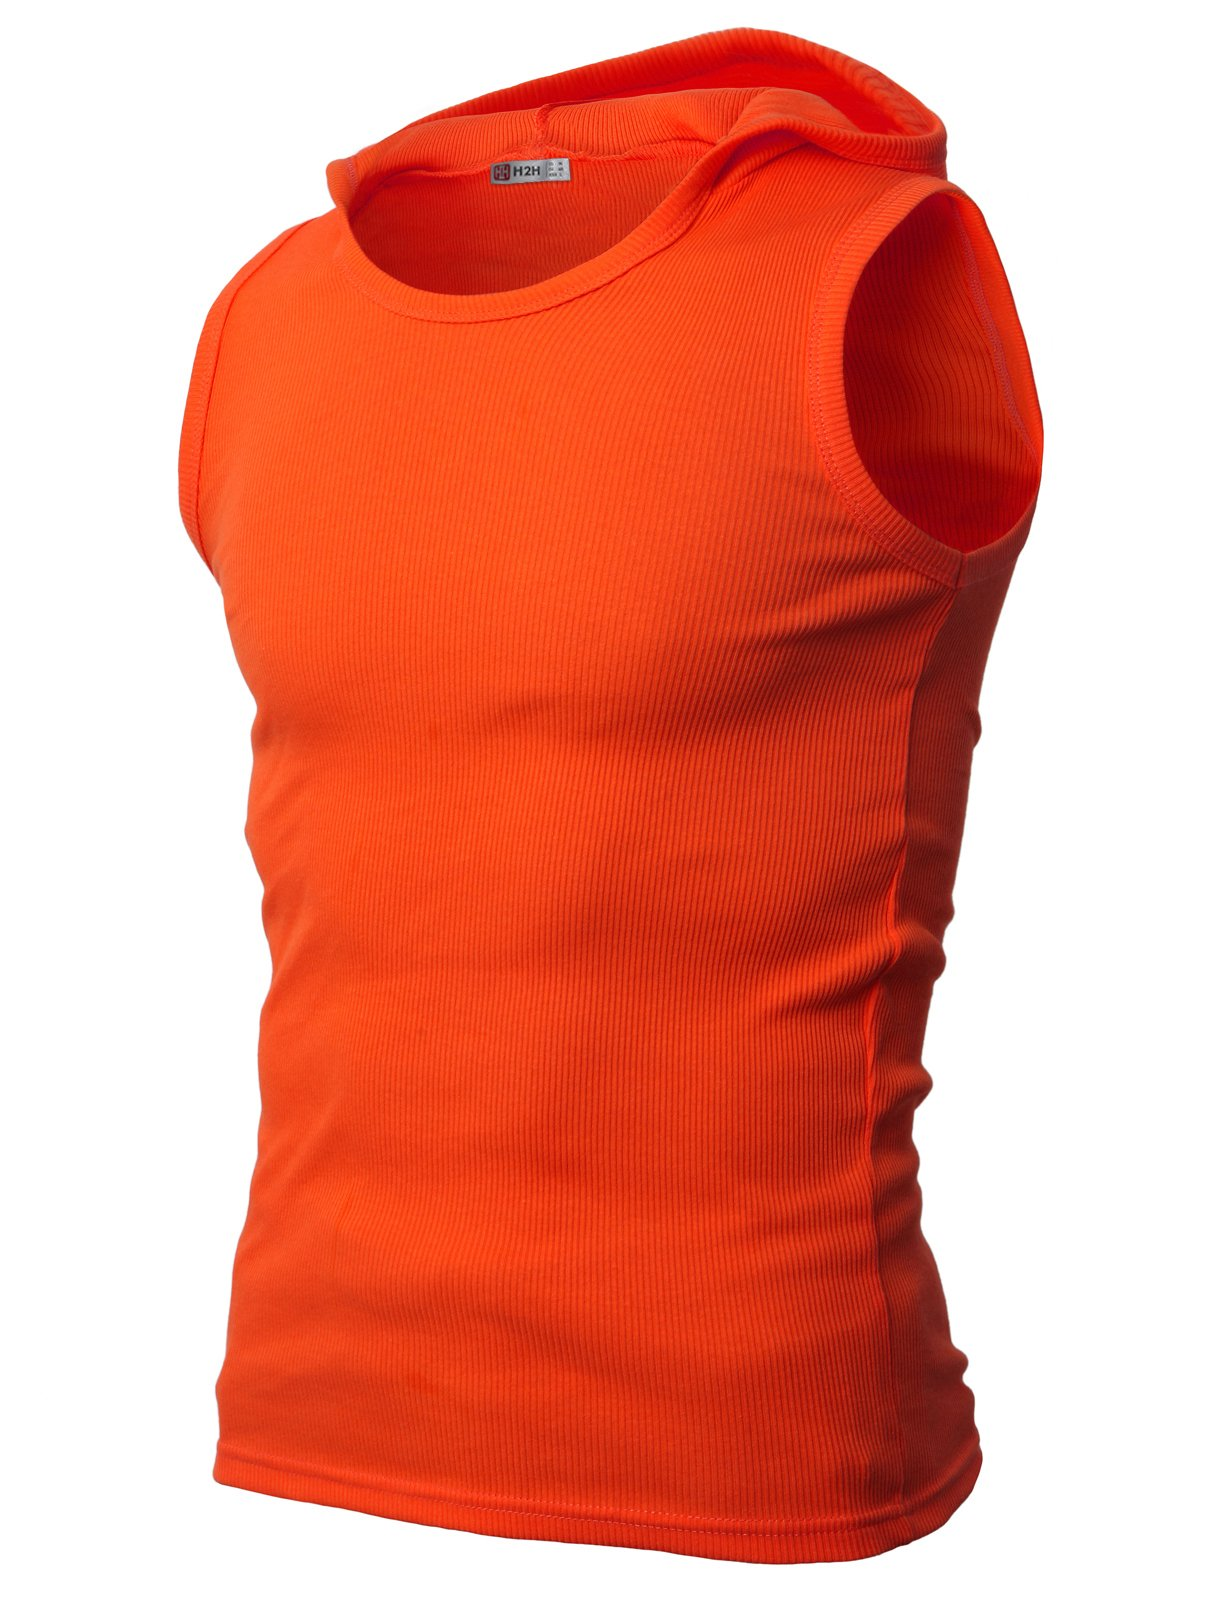 H2H Mens Easy Care Fashion Casual Hooded Sleeveless T-Shirts Orange US S/Asia M (JPSK05)